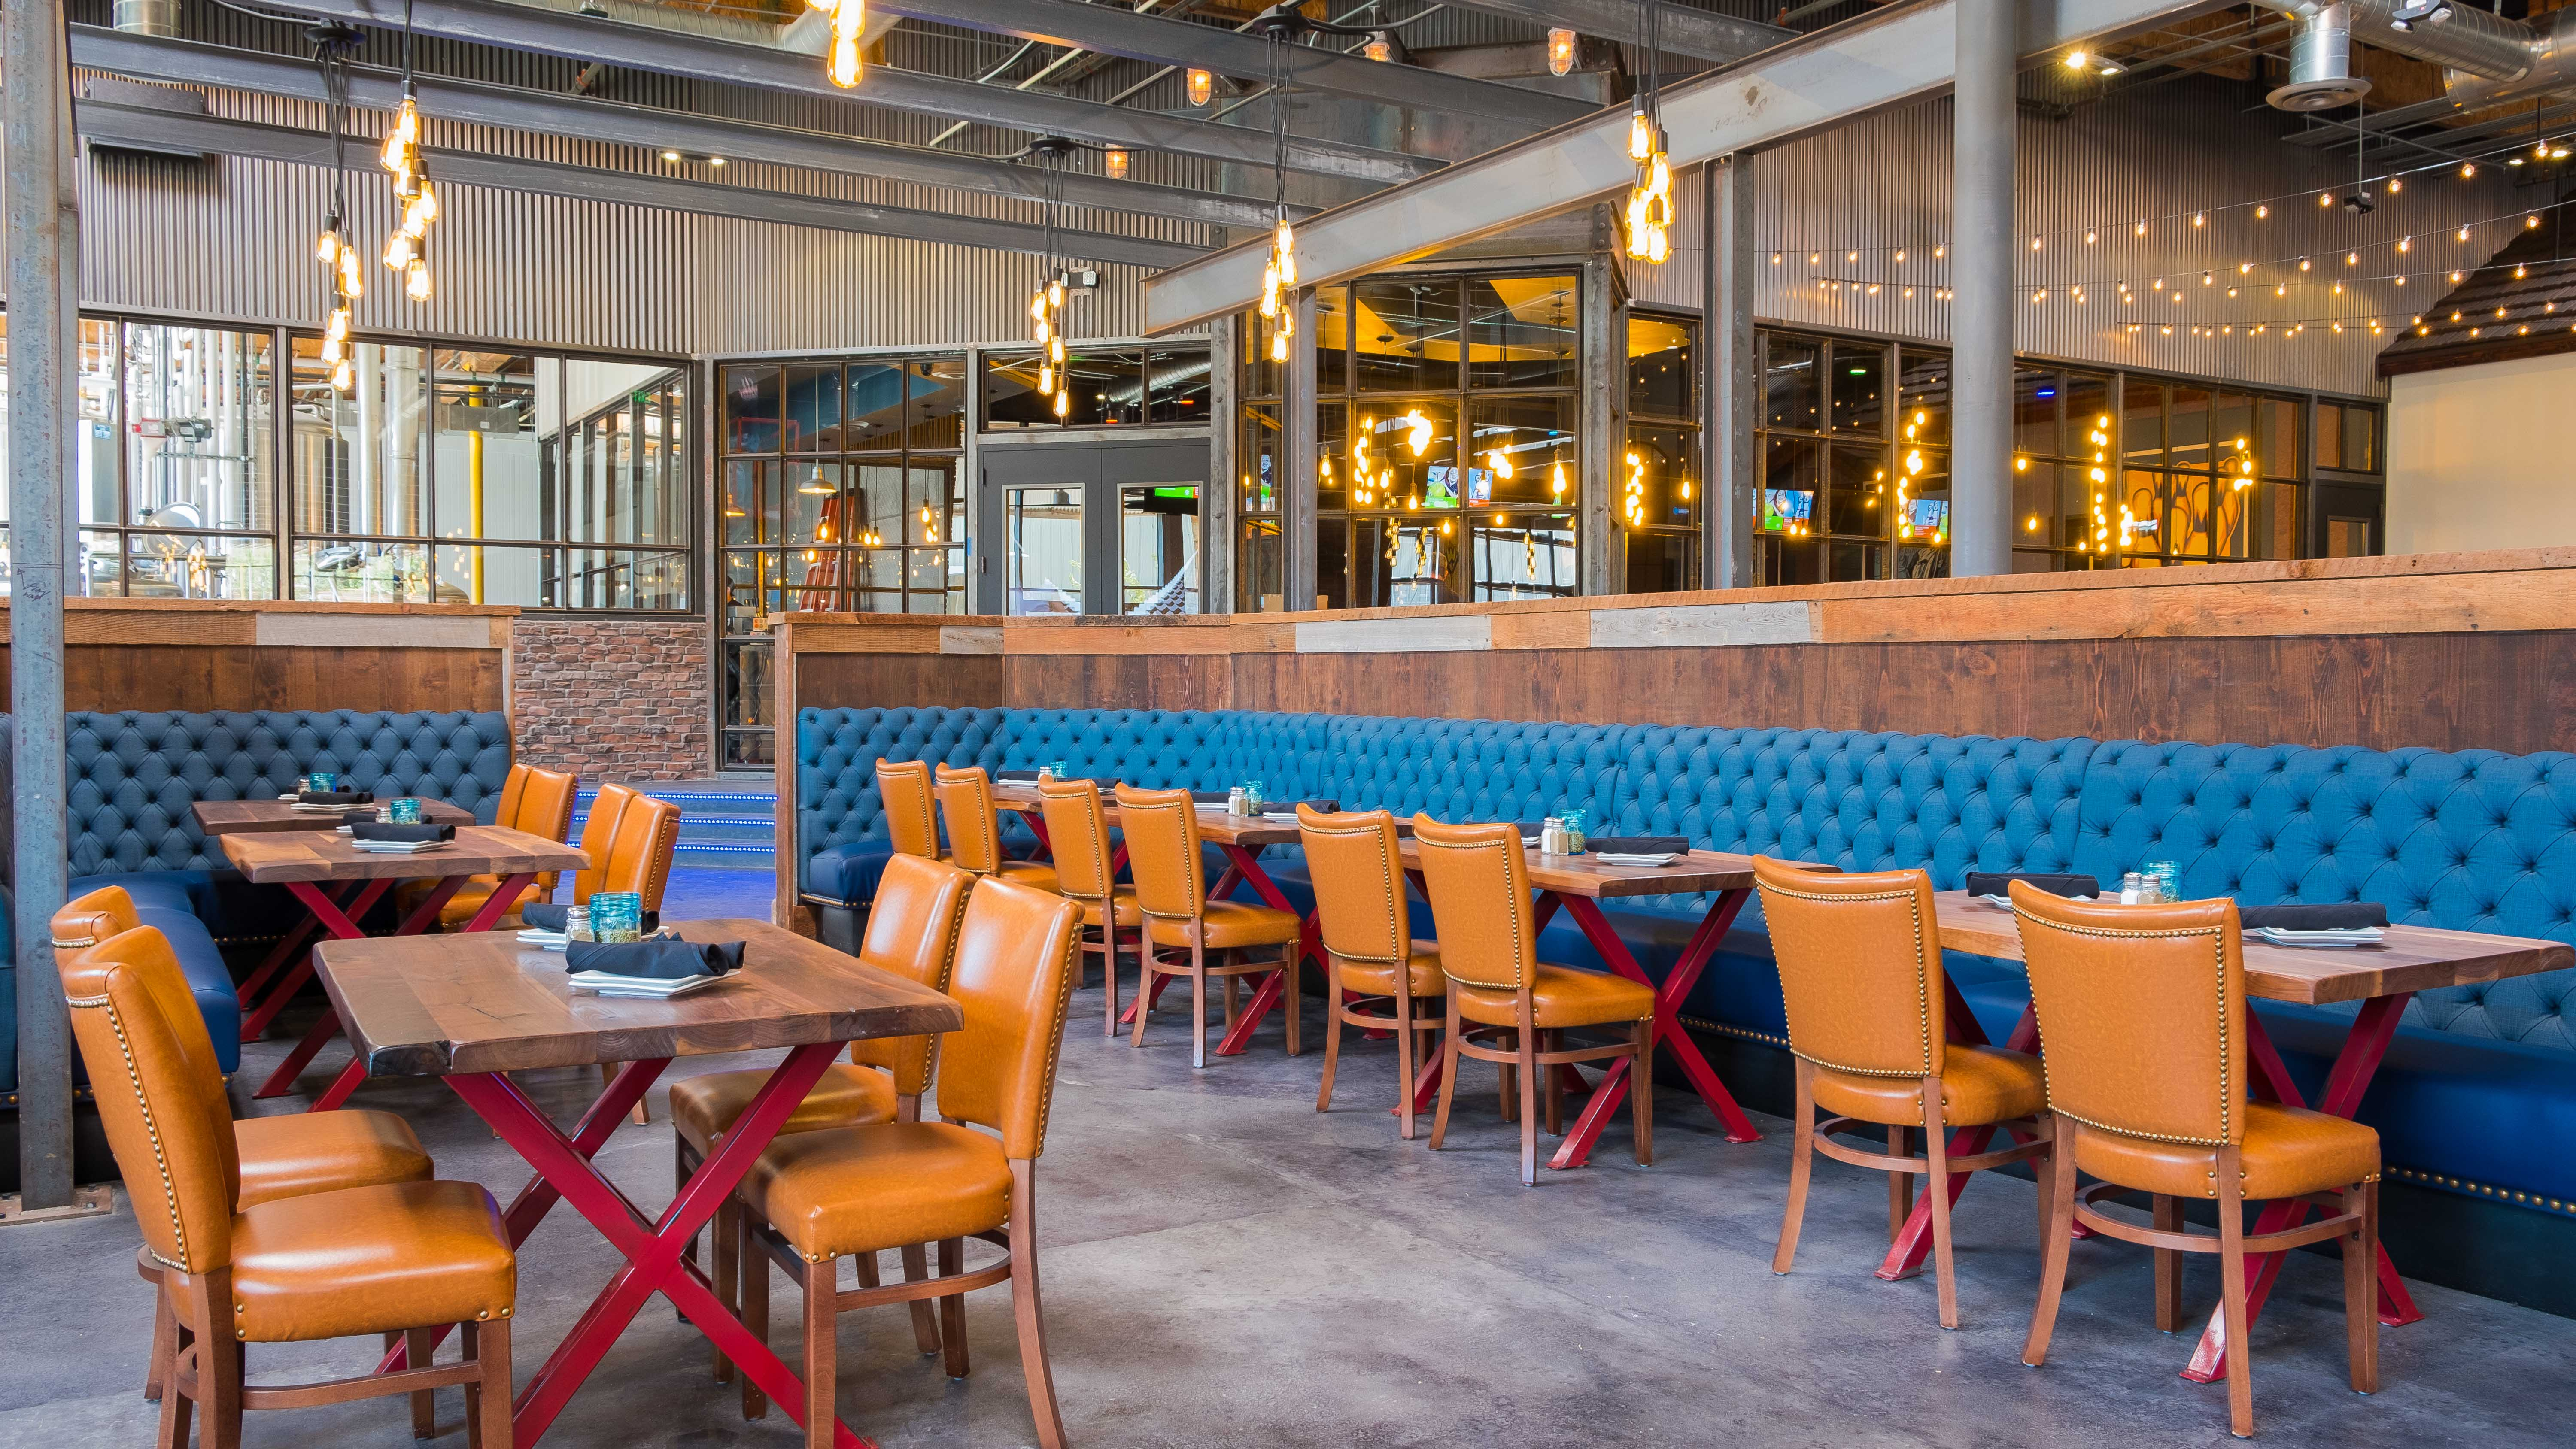 Urge Gastropub And Common House Drops The Mike In San Marcos With Brewpub Bowling Alley And More Eater San Diego